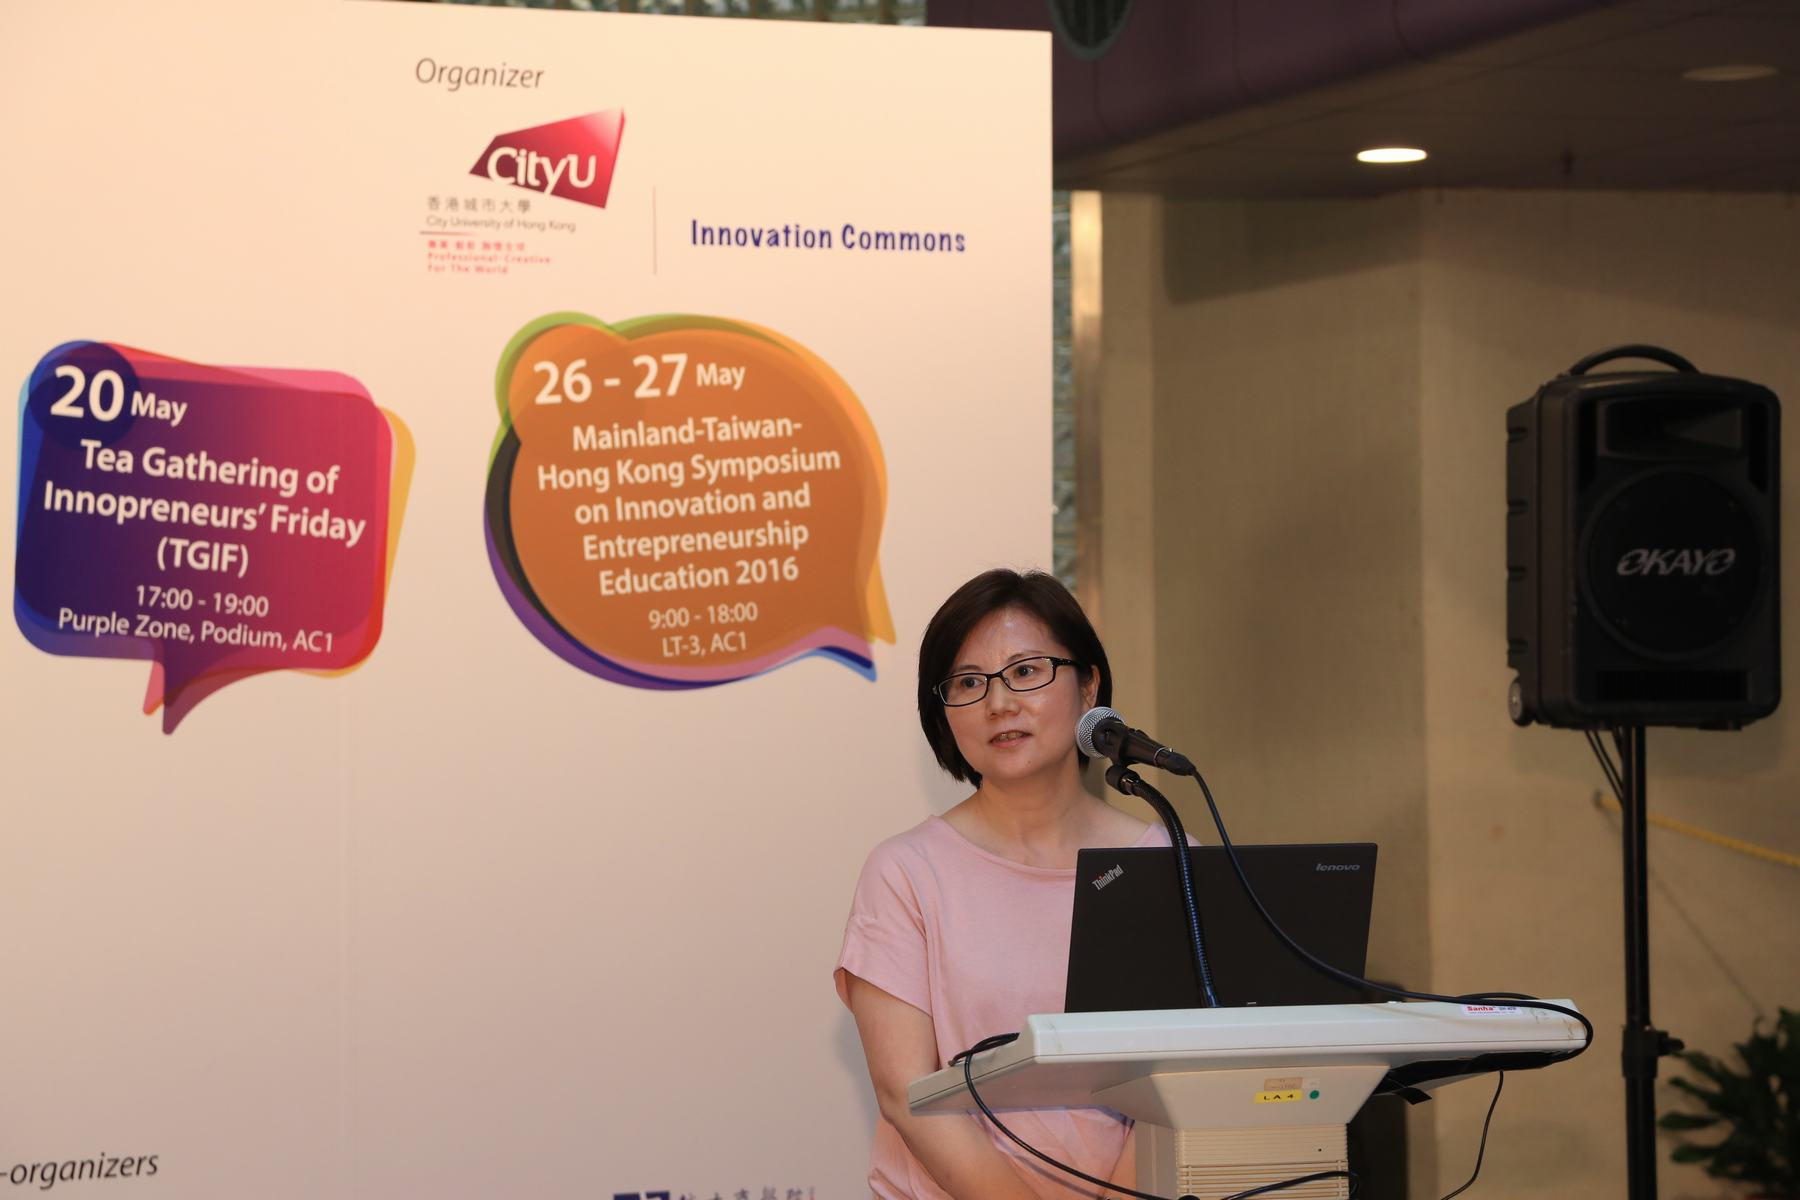 Hong Kong Institute of Patent Attorneys Limited (HKIPA) - 2016 CityU IP Conference for Students